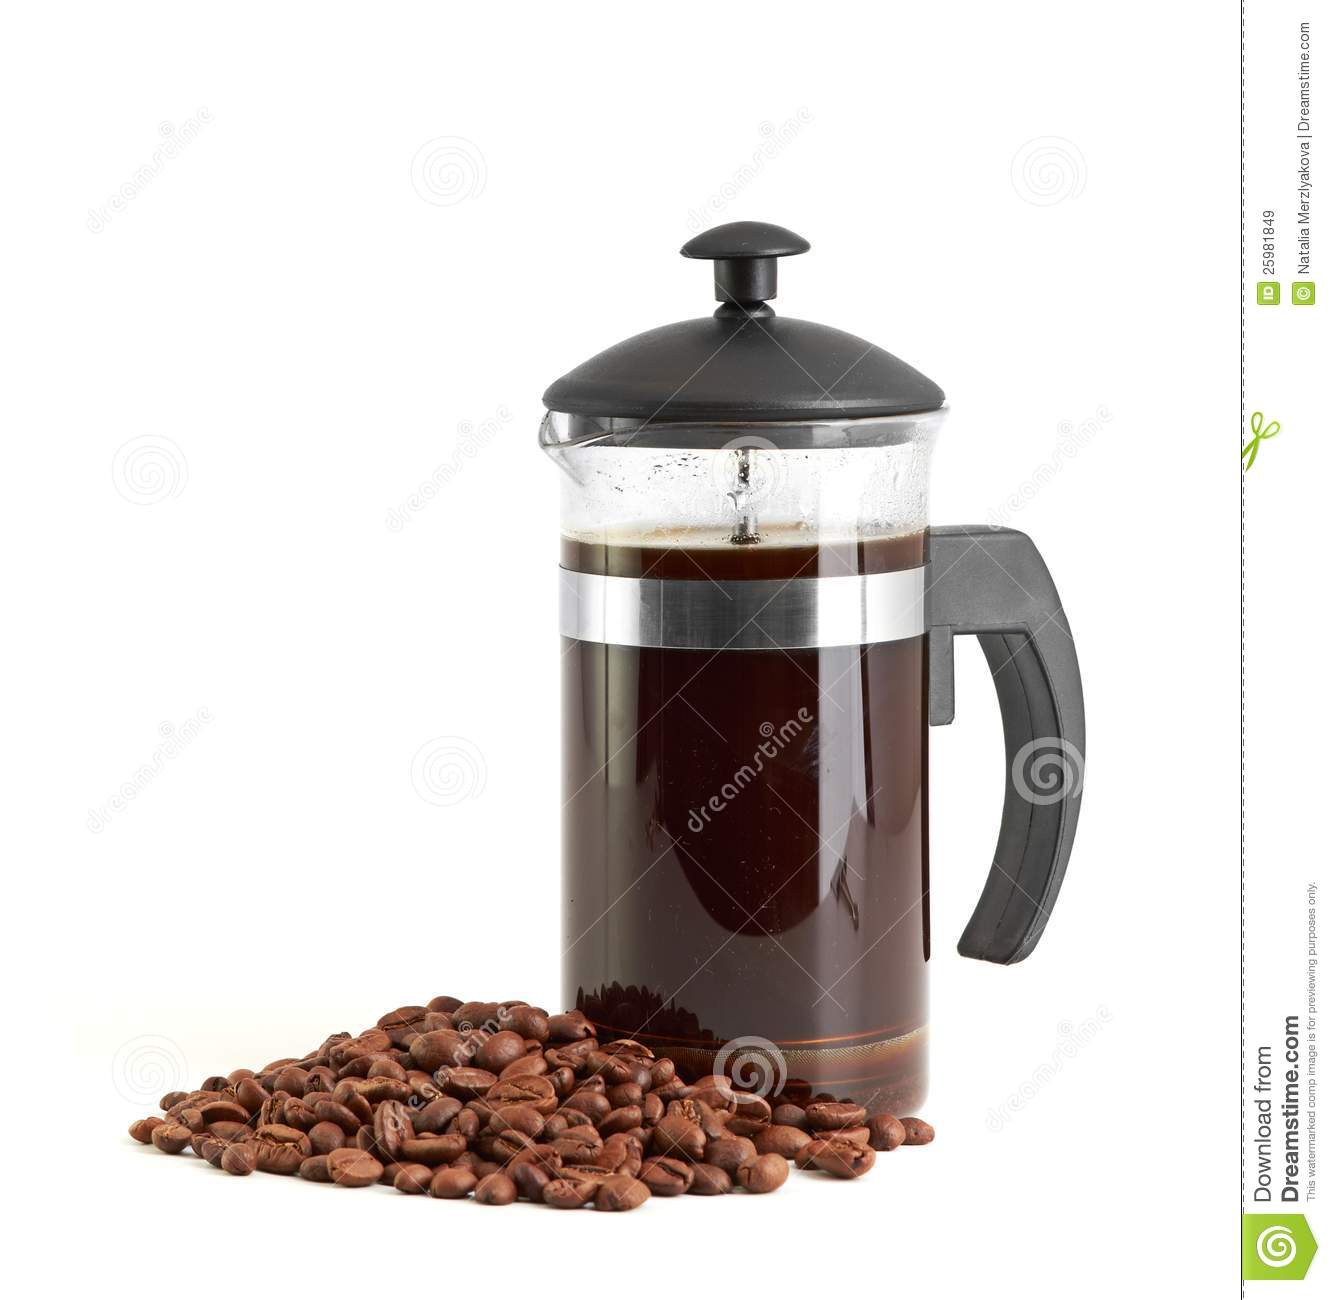 White French Press Coffee Maker : French Press Coffee Maker On White Background Royalty Free Stock Images - Image: 25981849